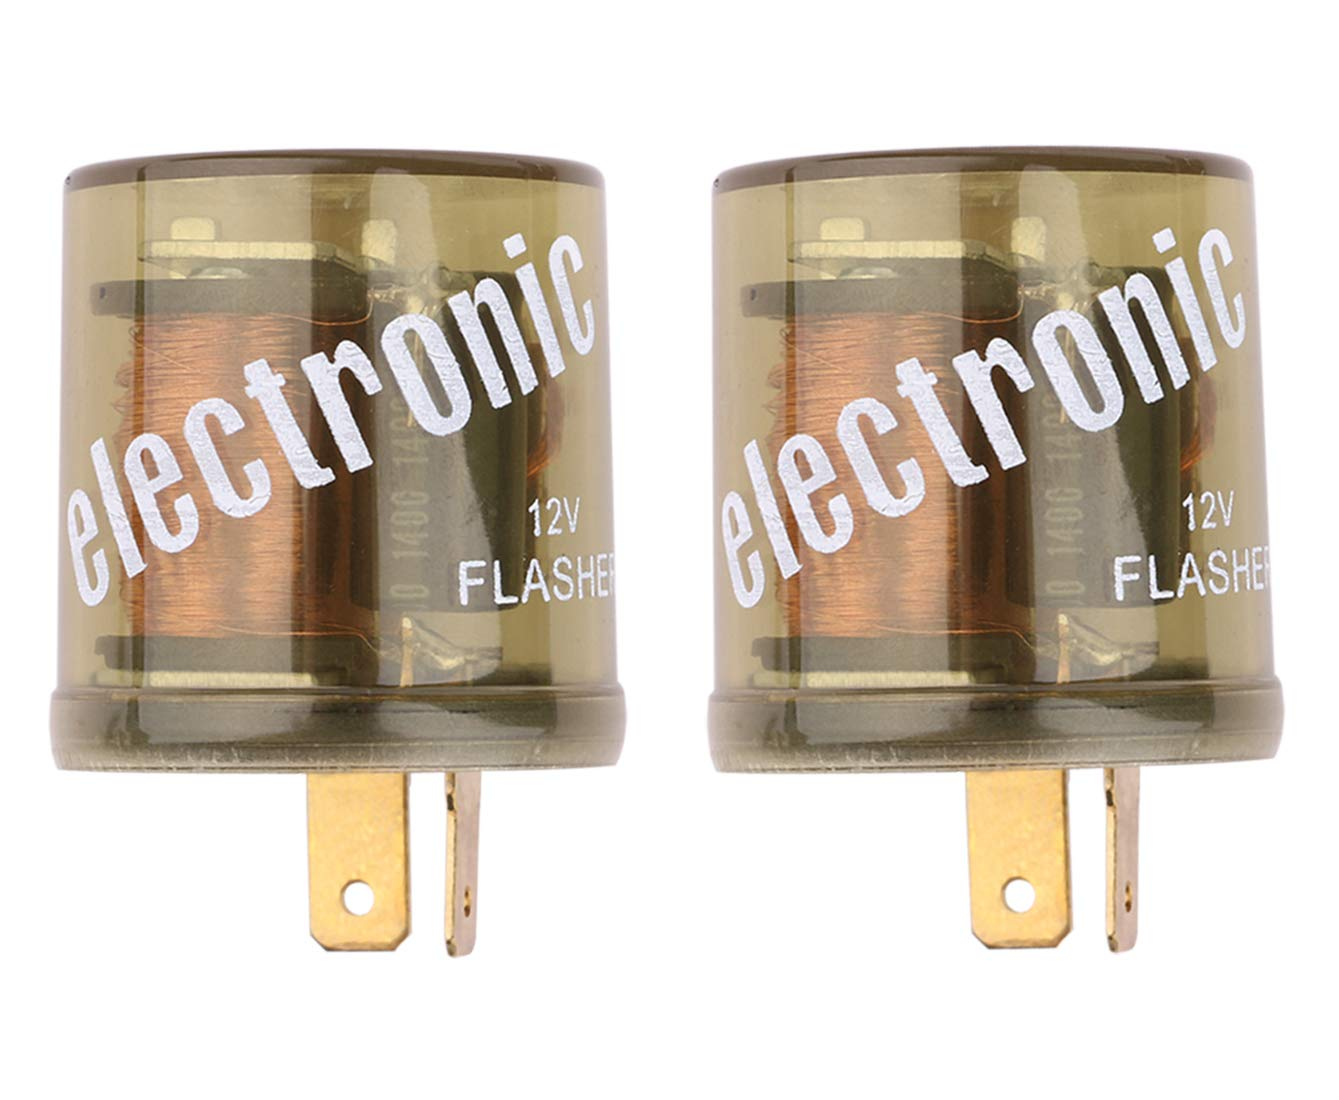 Electronic Flasher Relay, Sdootauto Heavy Duty Turn Signal Flasher Relay 2 Pin 12V LED Compatible for Motors Turn Signal & Hazard Warning- 2 Pack